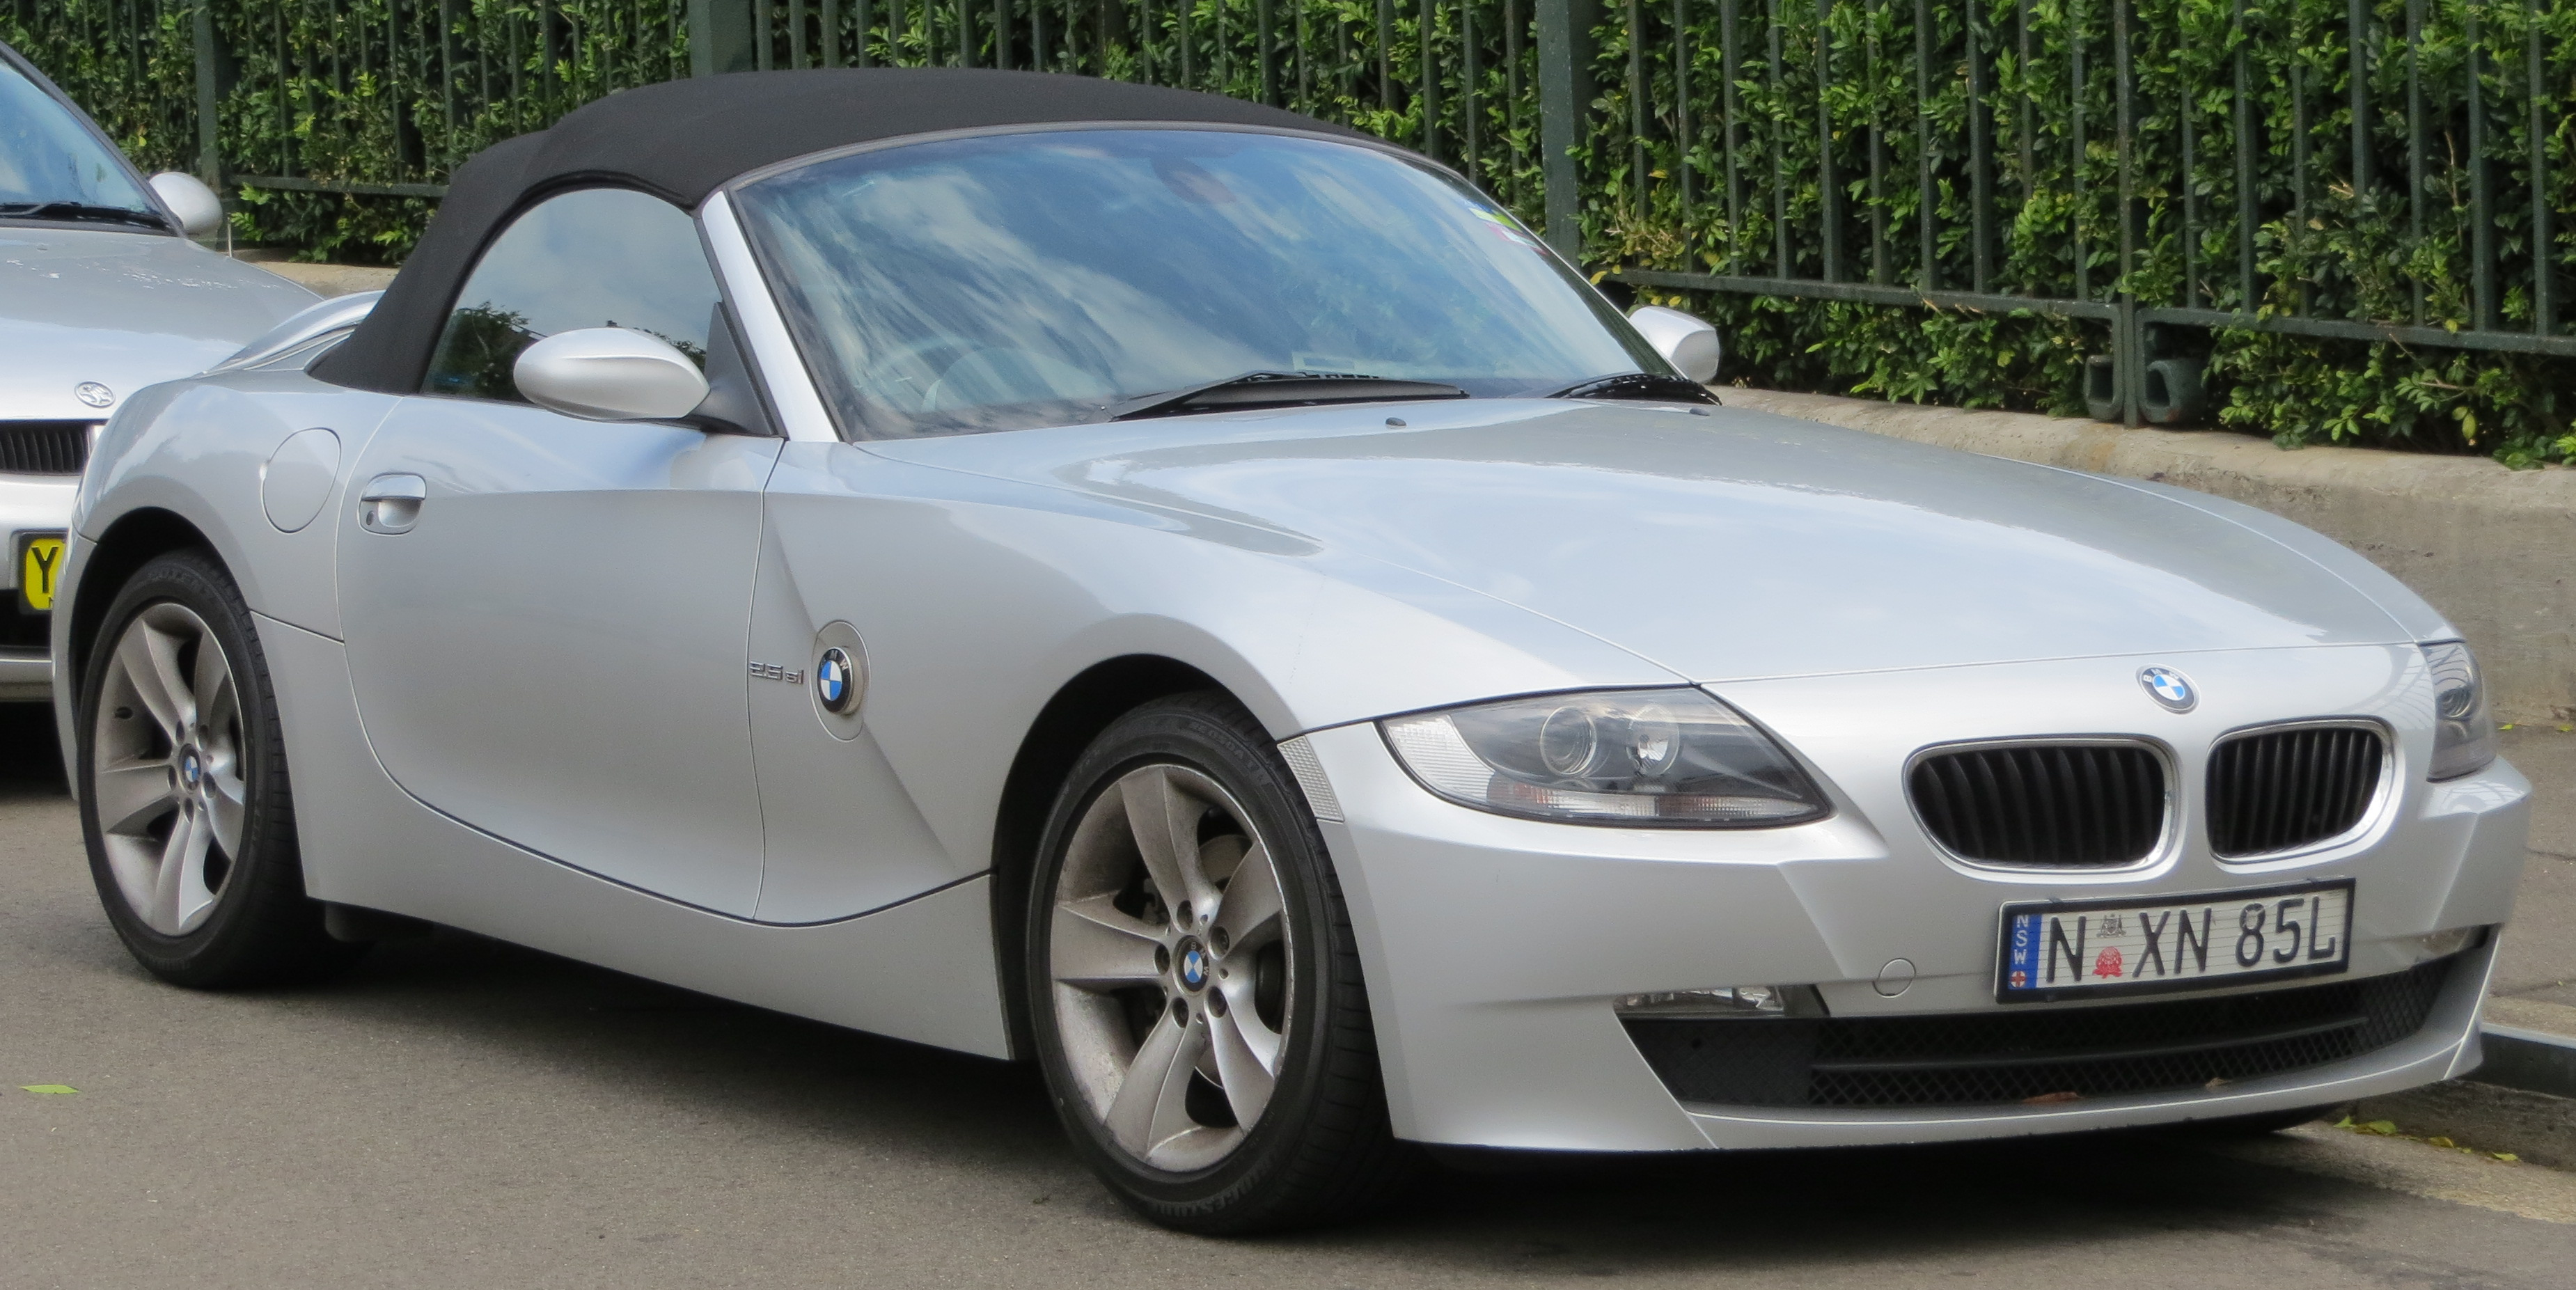 Bmw Z4 2 5si 2006 Technical Specifications Interior And